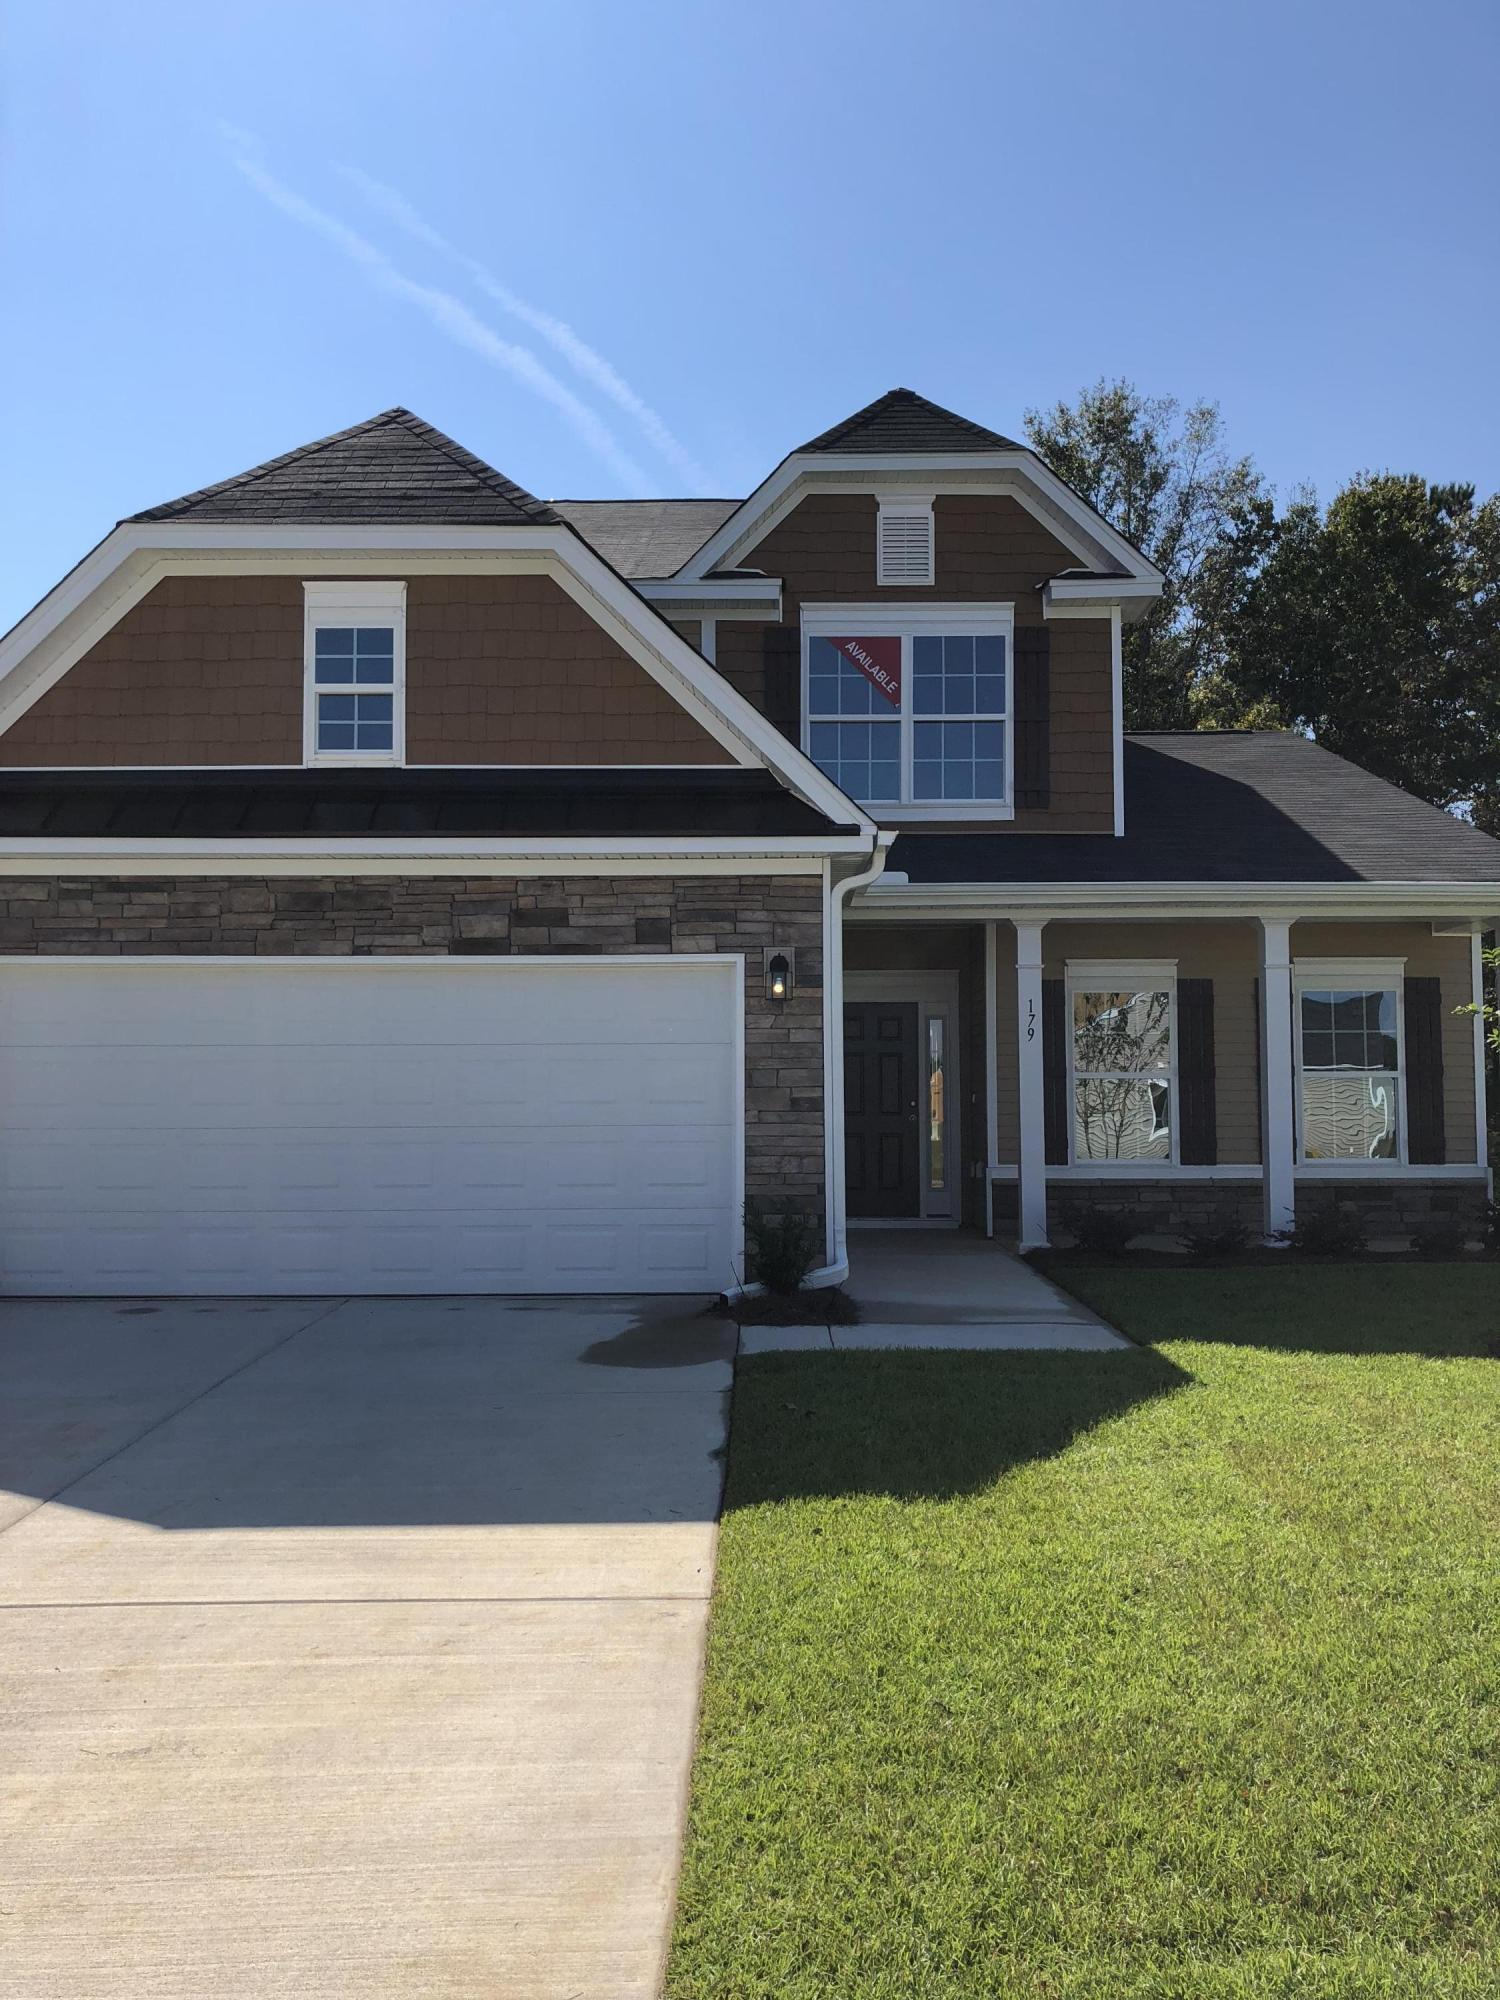 Sophia Landing Homes For Sale - 179 Vango, Goose Creek, SC - 4